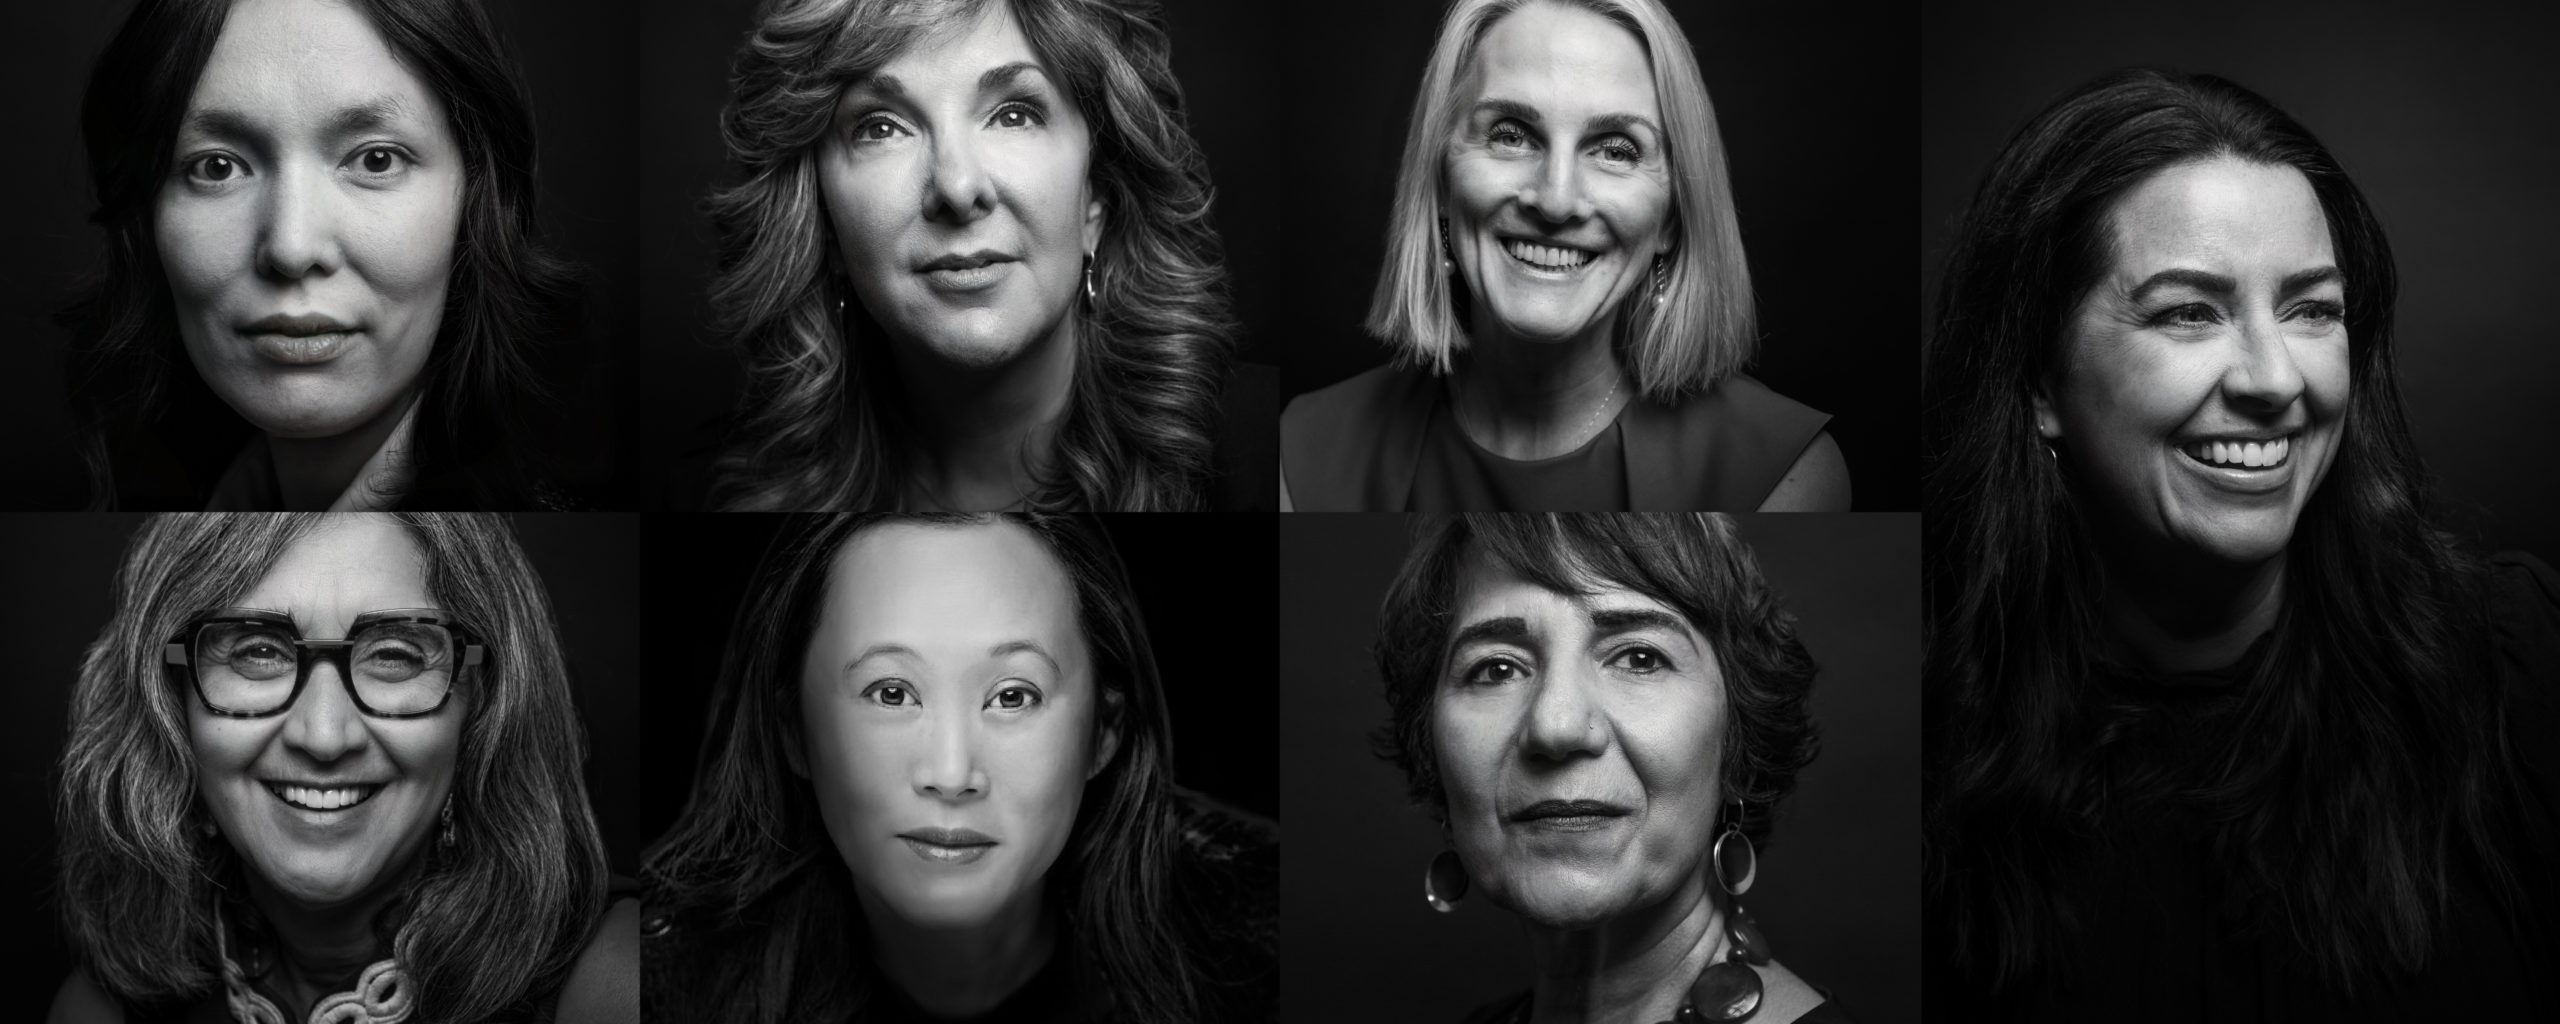 Every year, Utah Business honors the incredible women doing incredible things throughout the state. Here are this year's 2021 Women of the Year honorees.